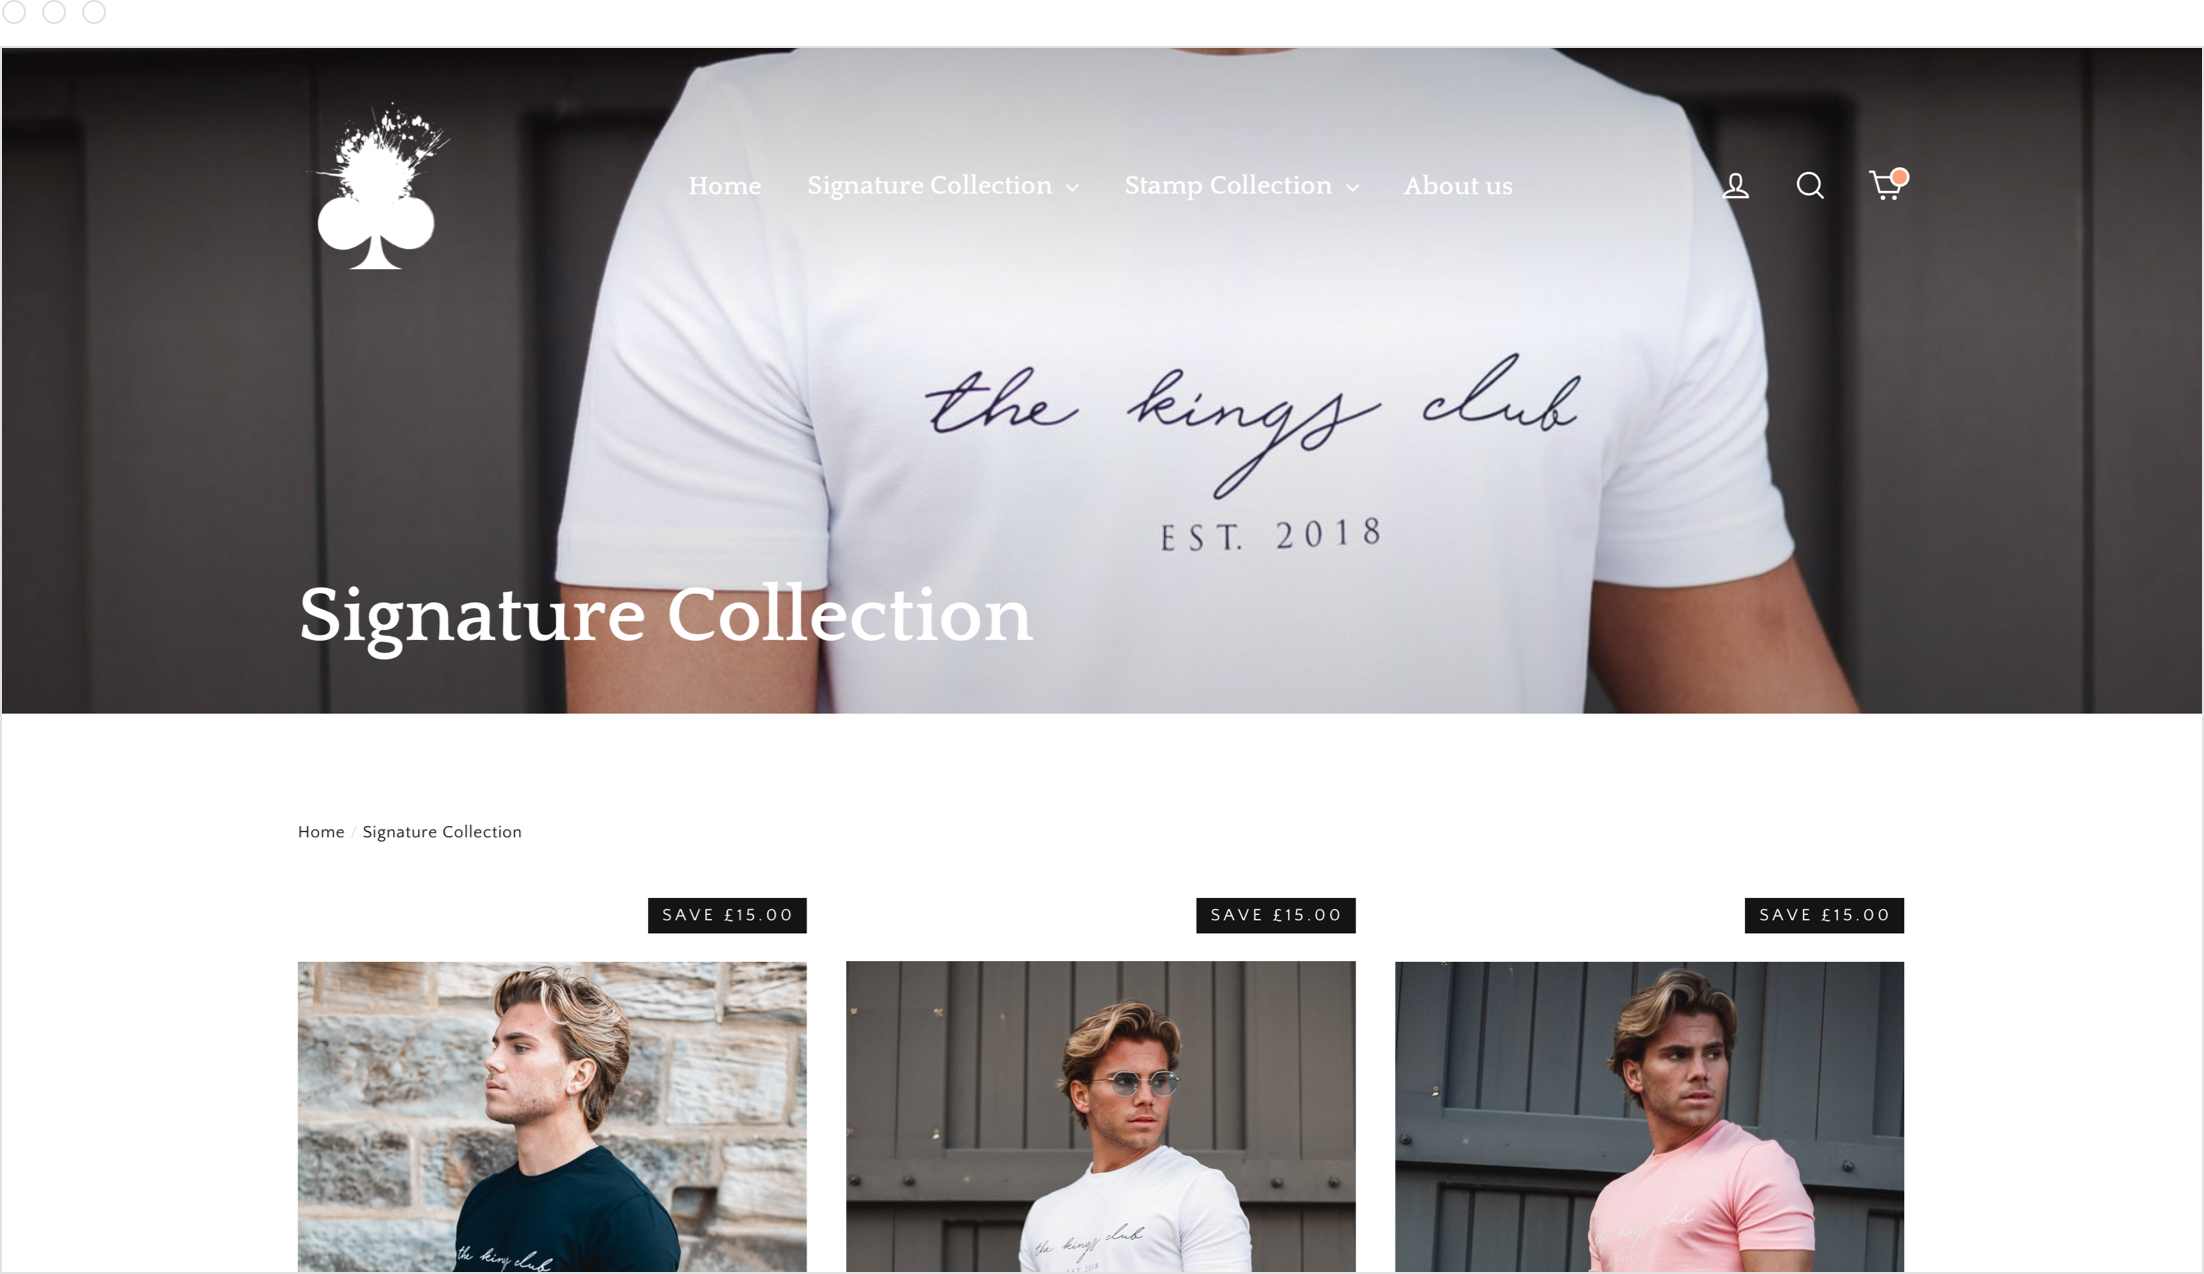 Product collection, website and online store design by Jack Watkins for men's clothing brand, The Kings Club